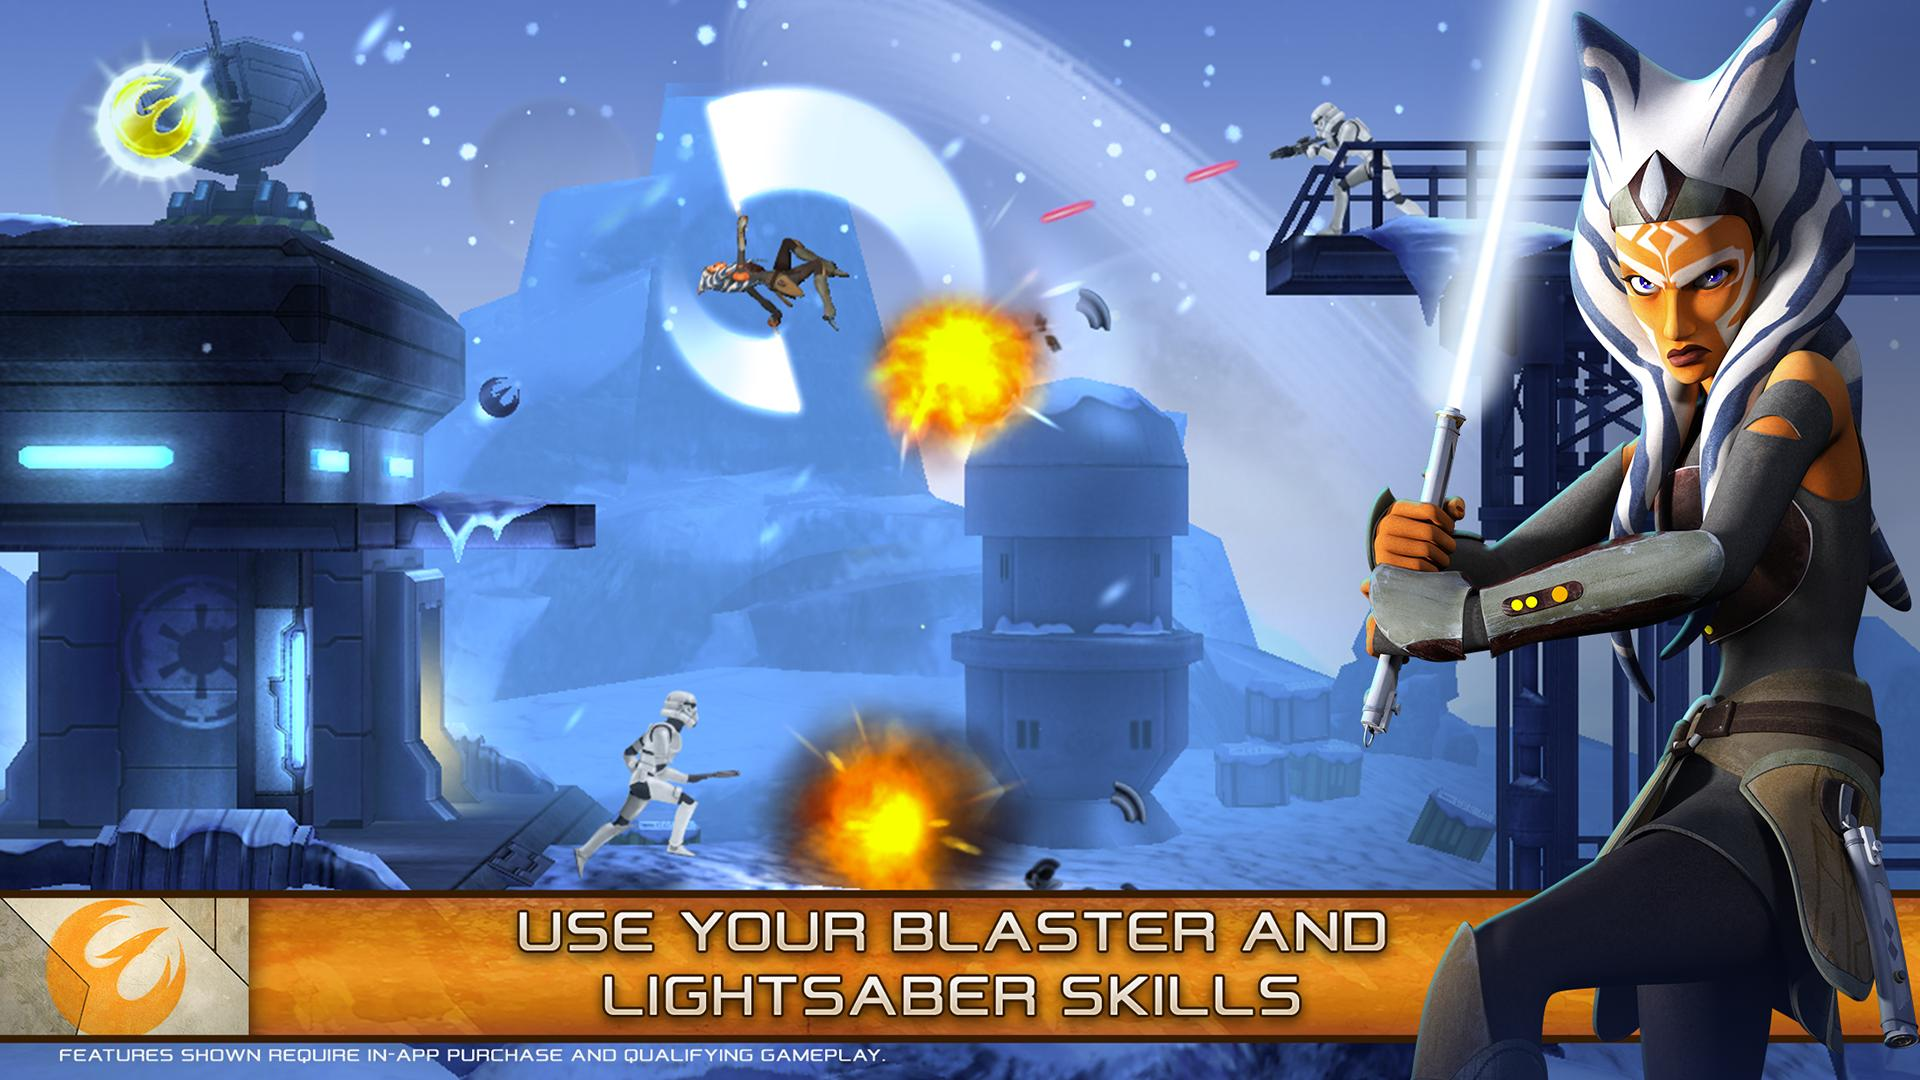 Star Wars Rebels Missions For Android Apk Download